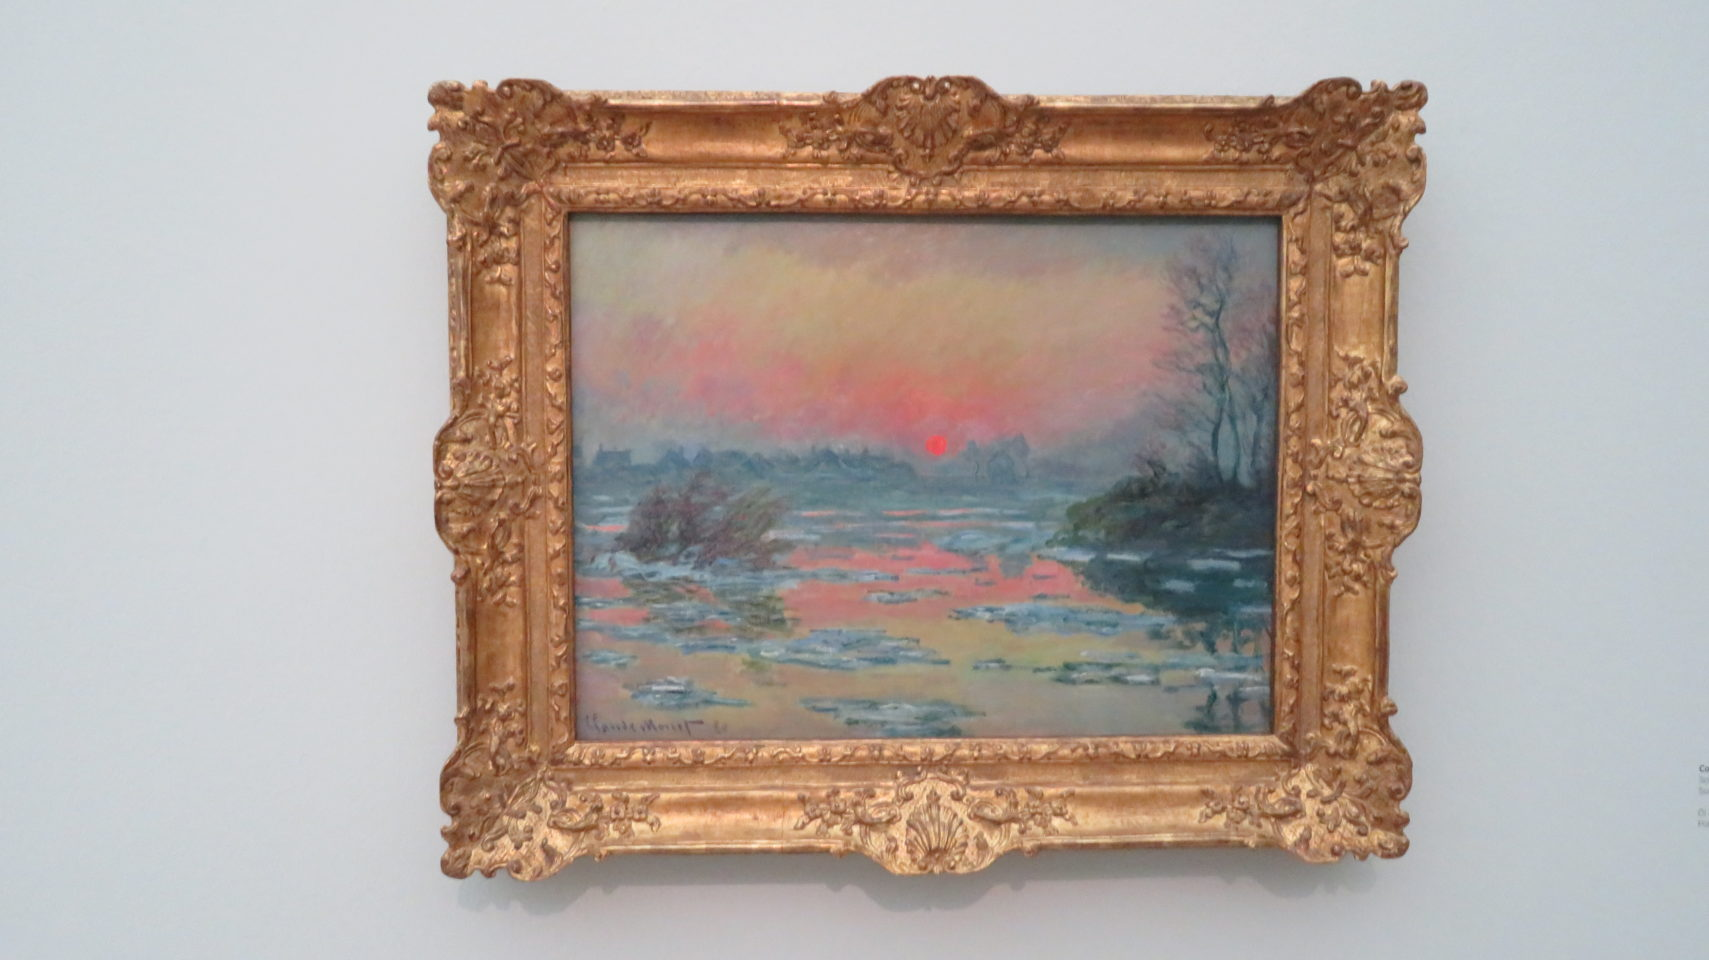 Coucher de Soleil sur la Seine, L'Hiver by Claude Monet at the Fondation Beyeler in Basel, Switzerland